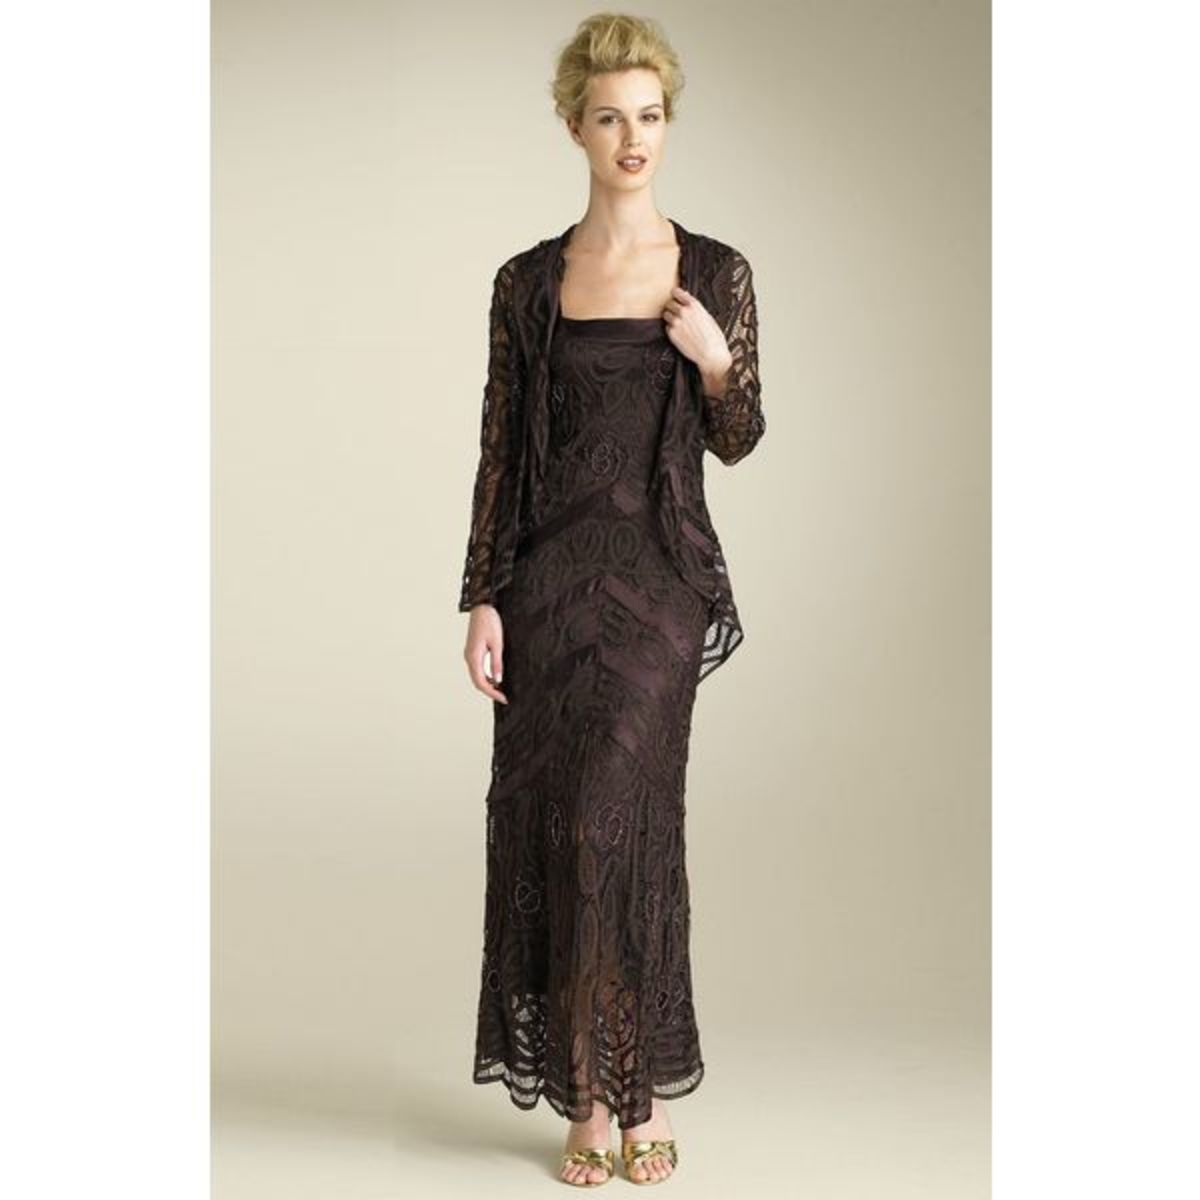 Soulmates Bead Crochet Dress & Jacket in Black